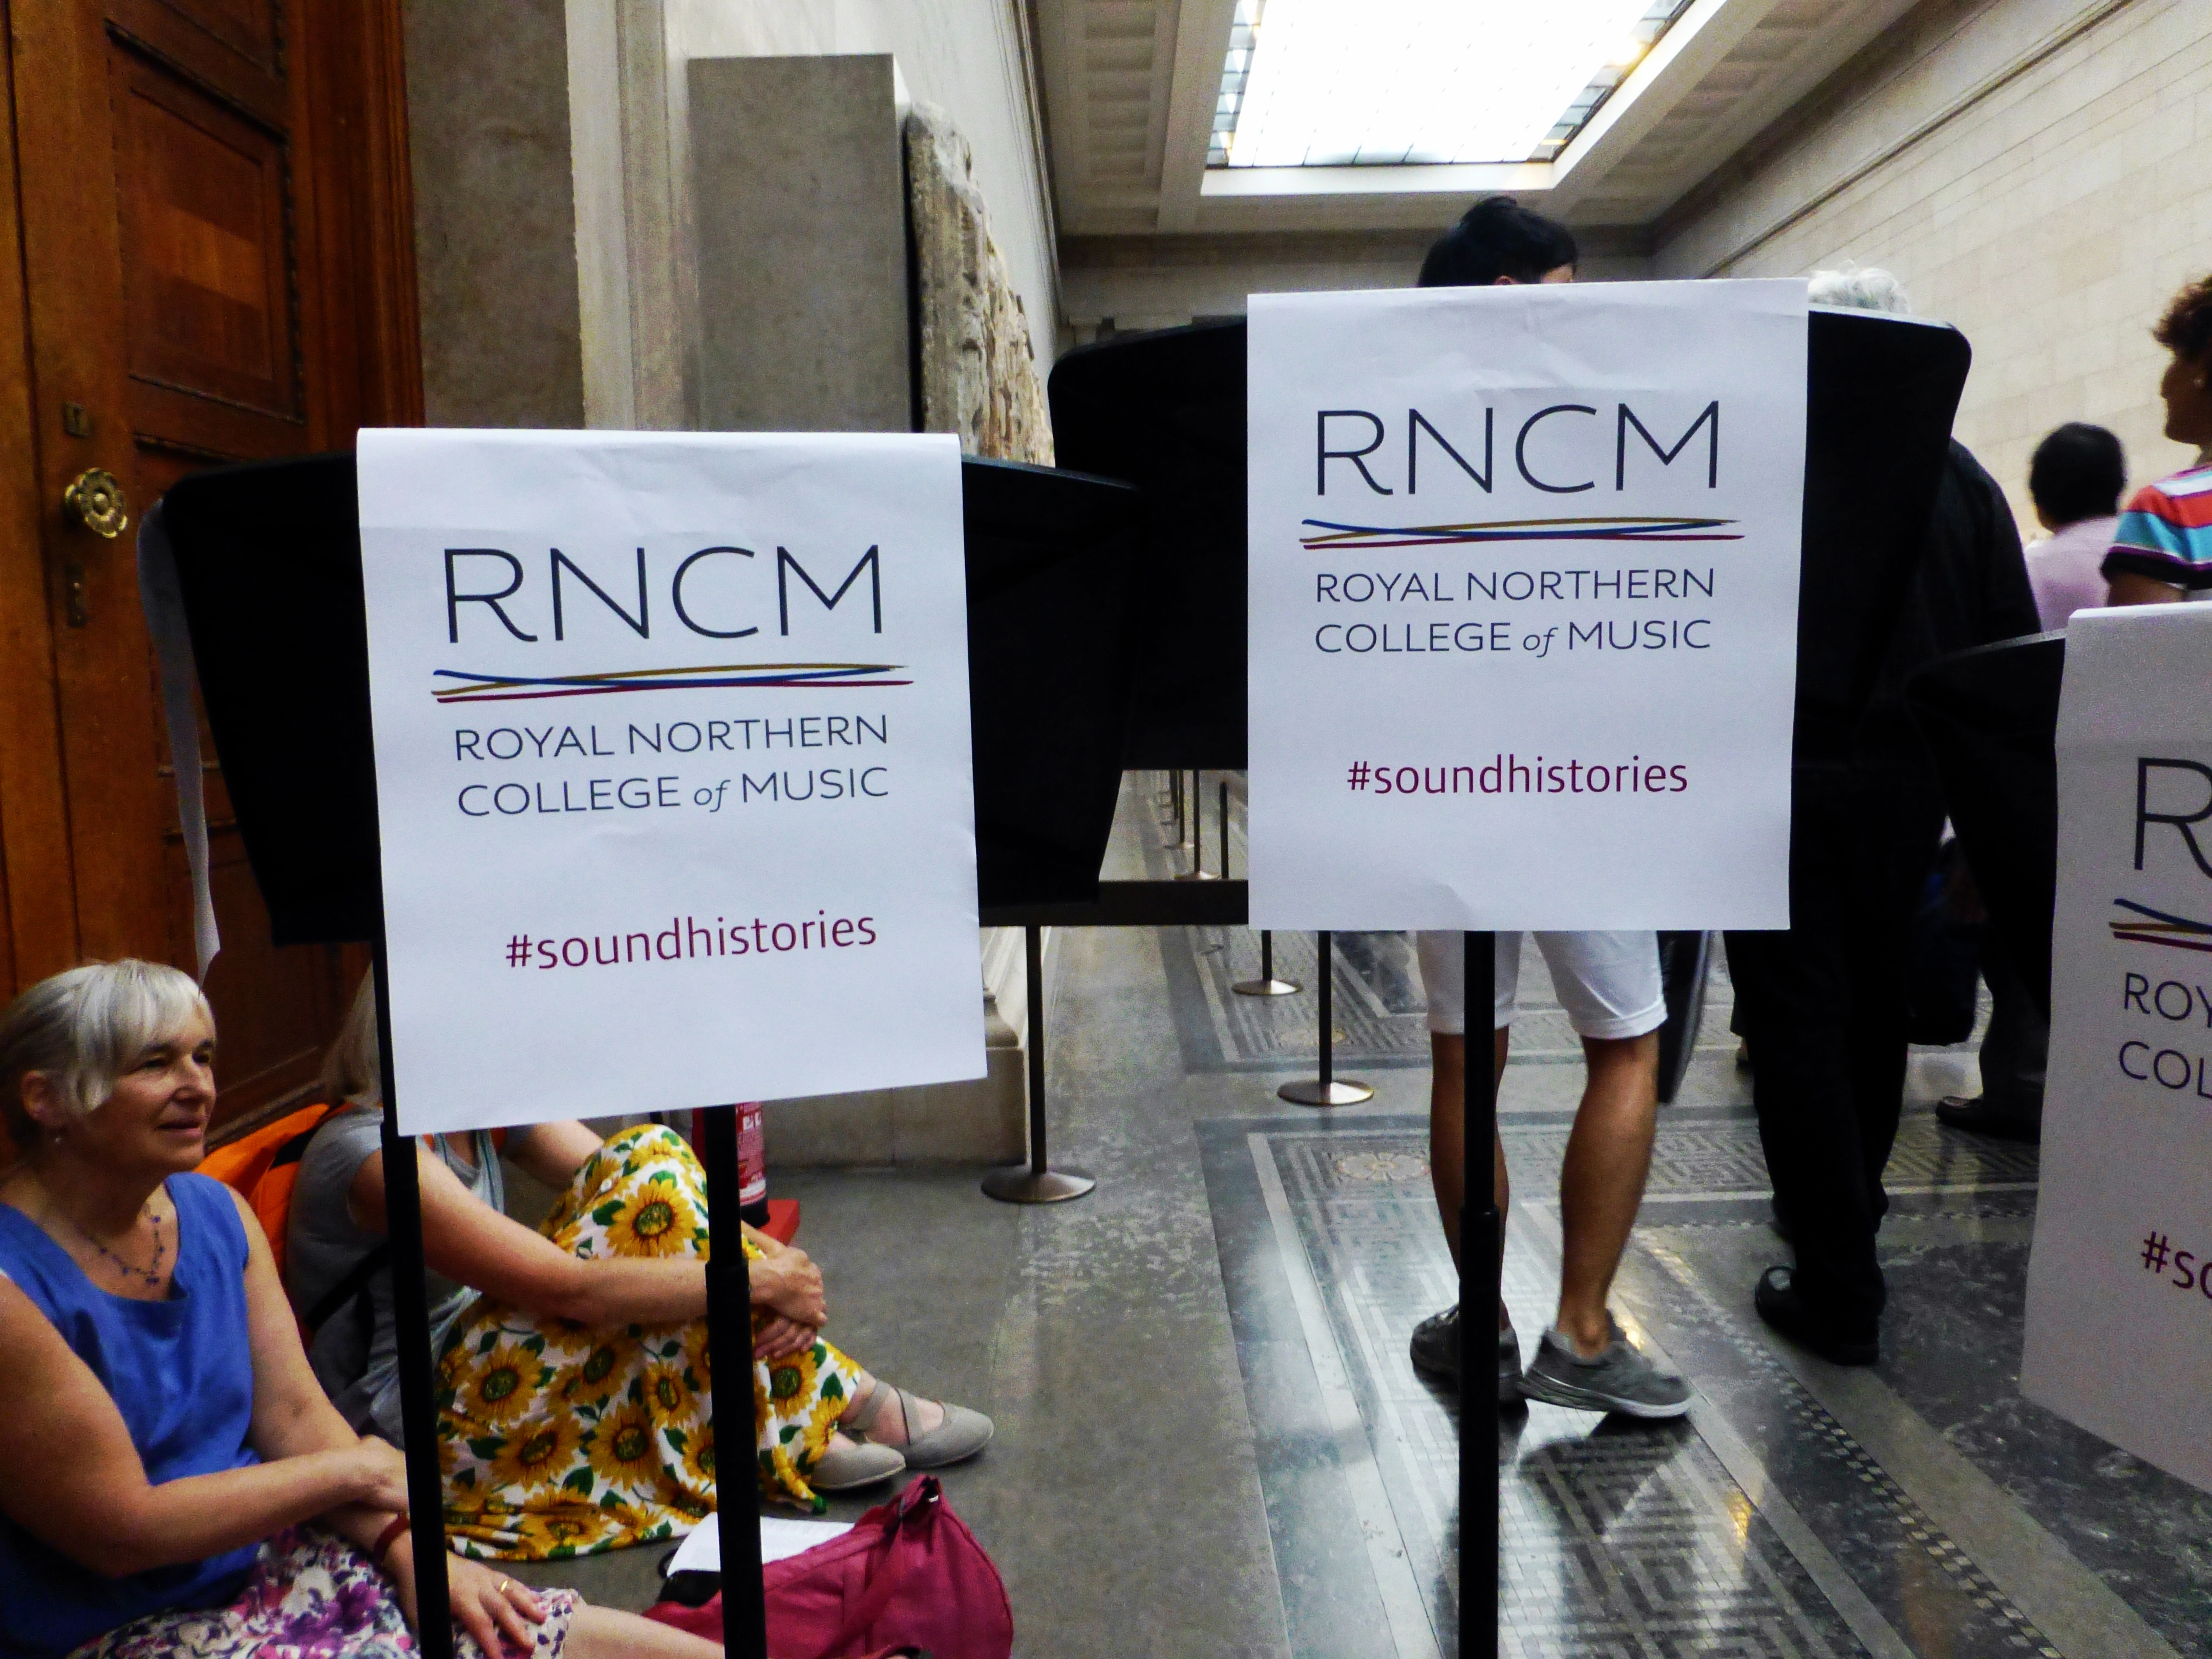 Royal Northern College of Music at #SoundHistories at the British Museum, London